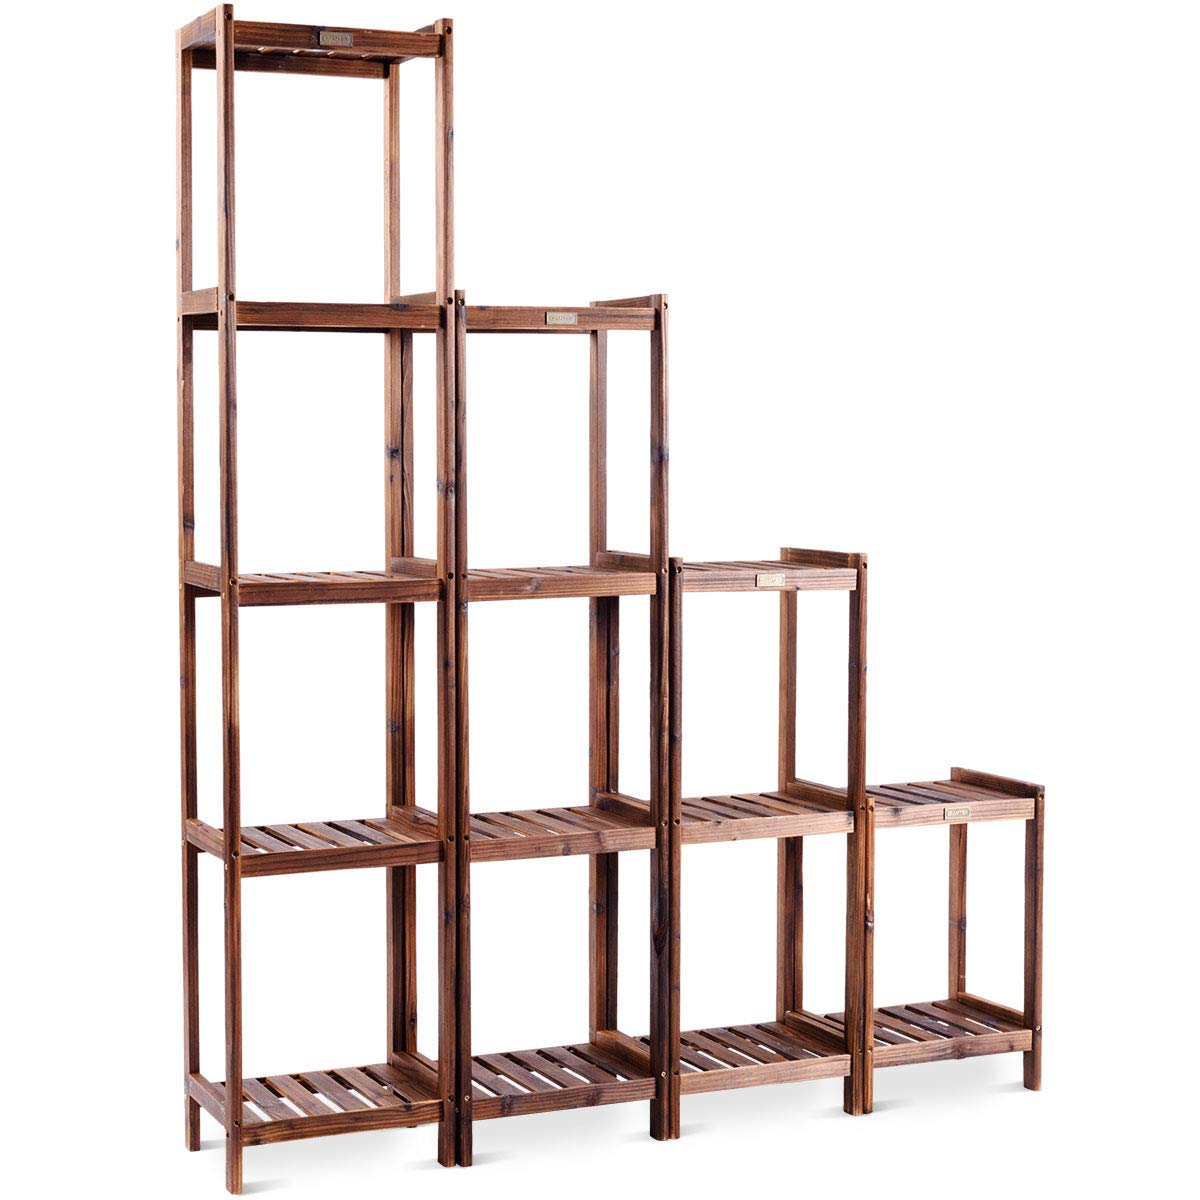 COSTWAY Plant Stand – with Wood Materials, 2/3/4/5 Tiers for Choose, Multilayer Design, Combinable Construction as Flower Rack | Display Shelf | Pot Holder in Garden, Patio Yard Outdoor Indoor (2 Tier)